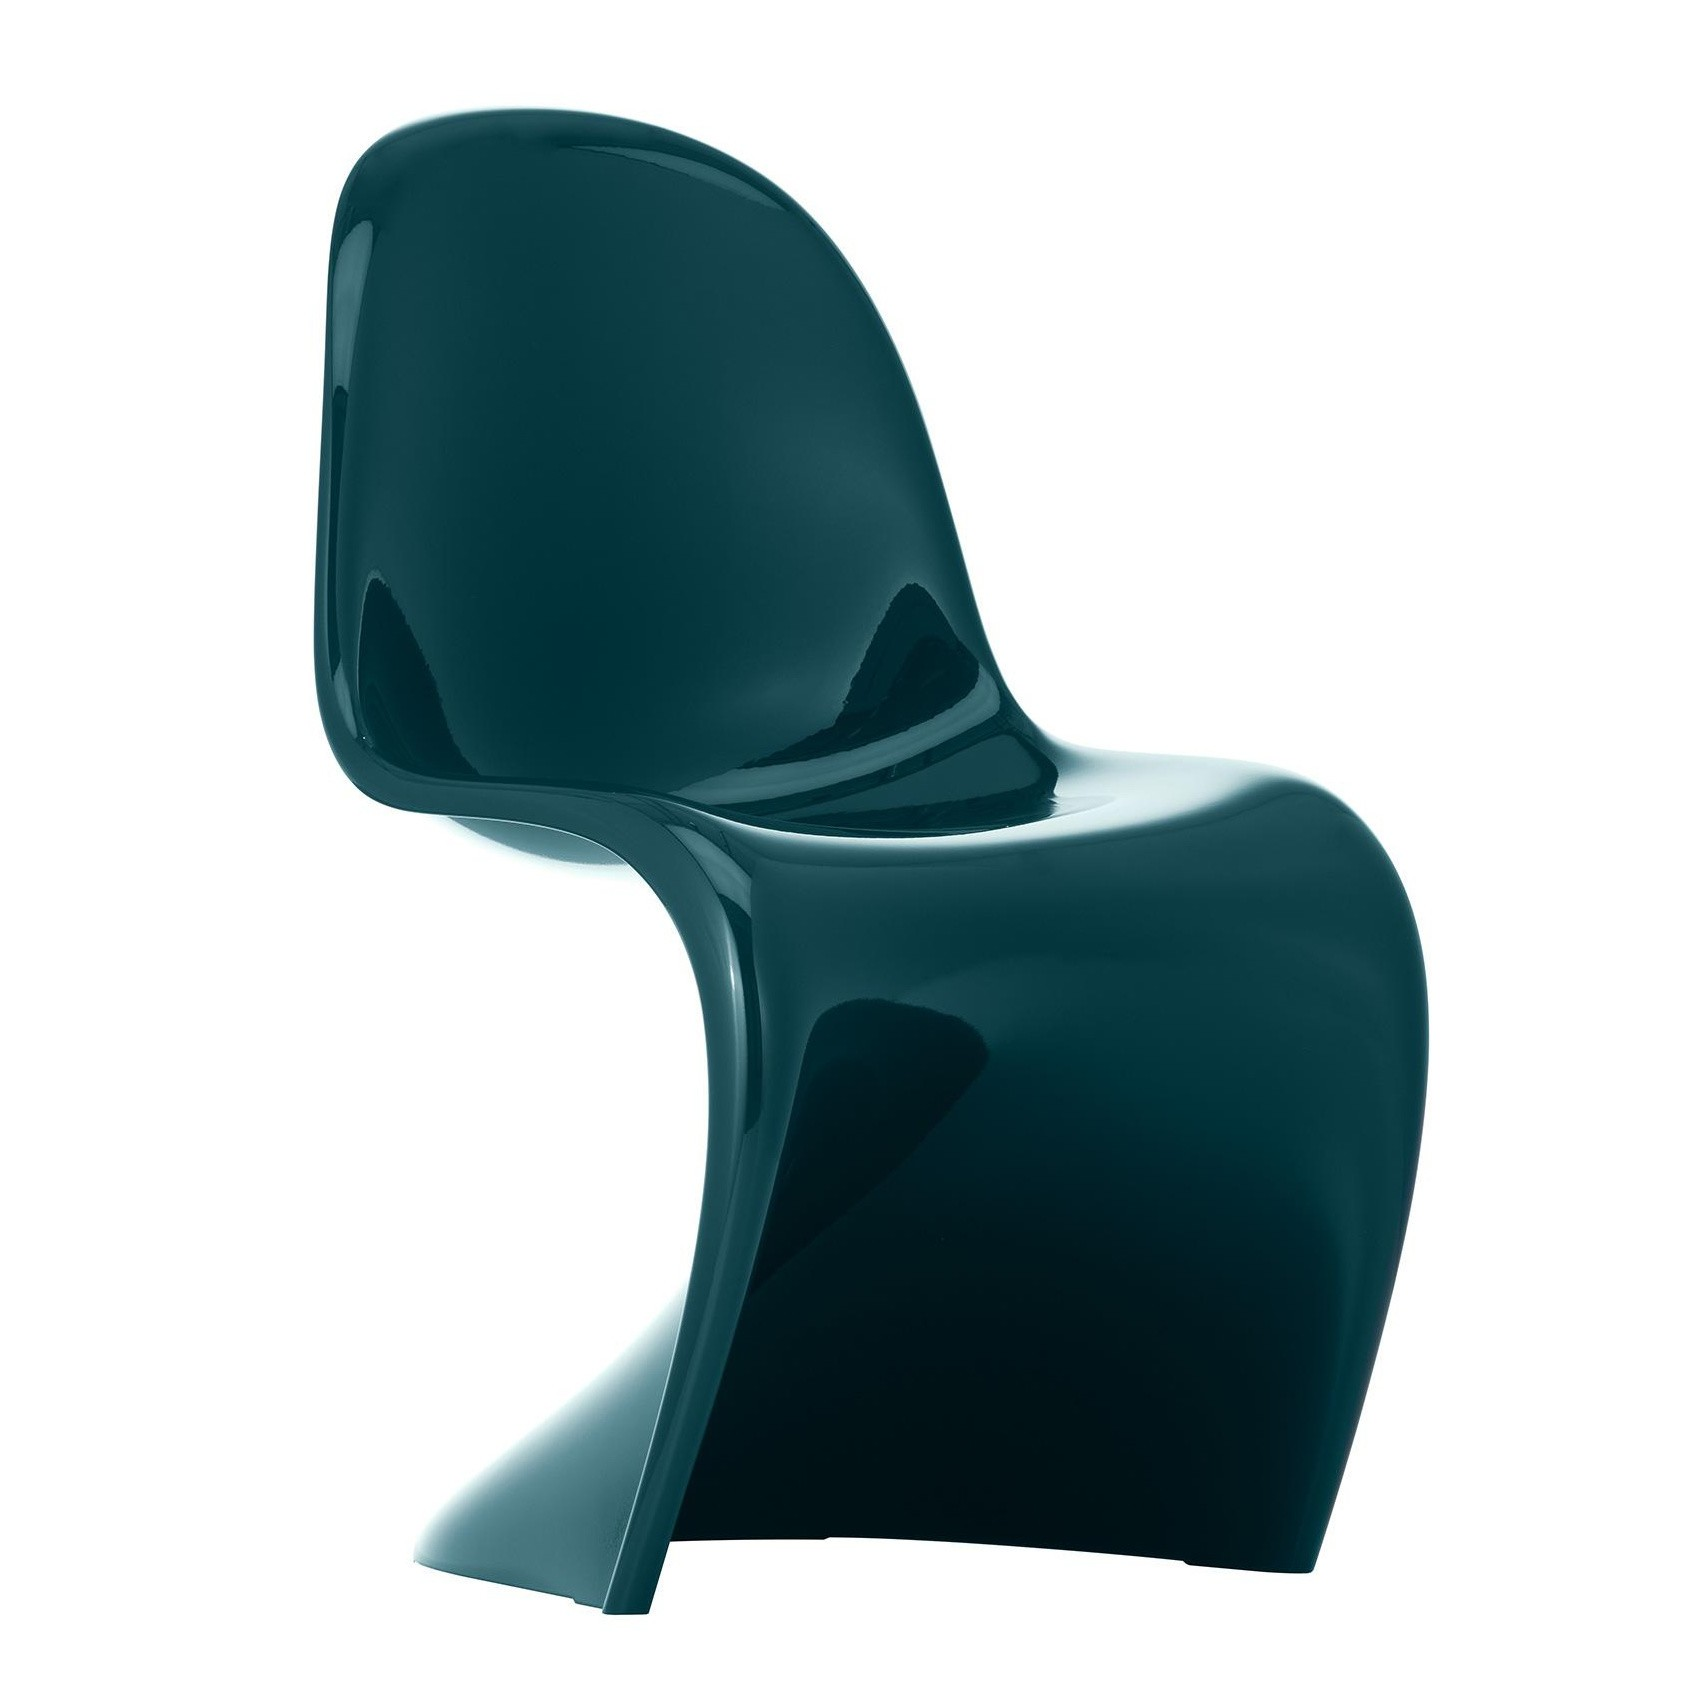 Chaise Panton Verner Panton limited edition panton classic chair